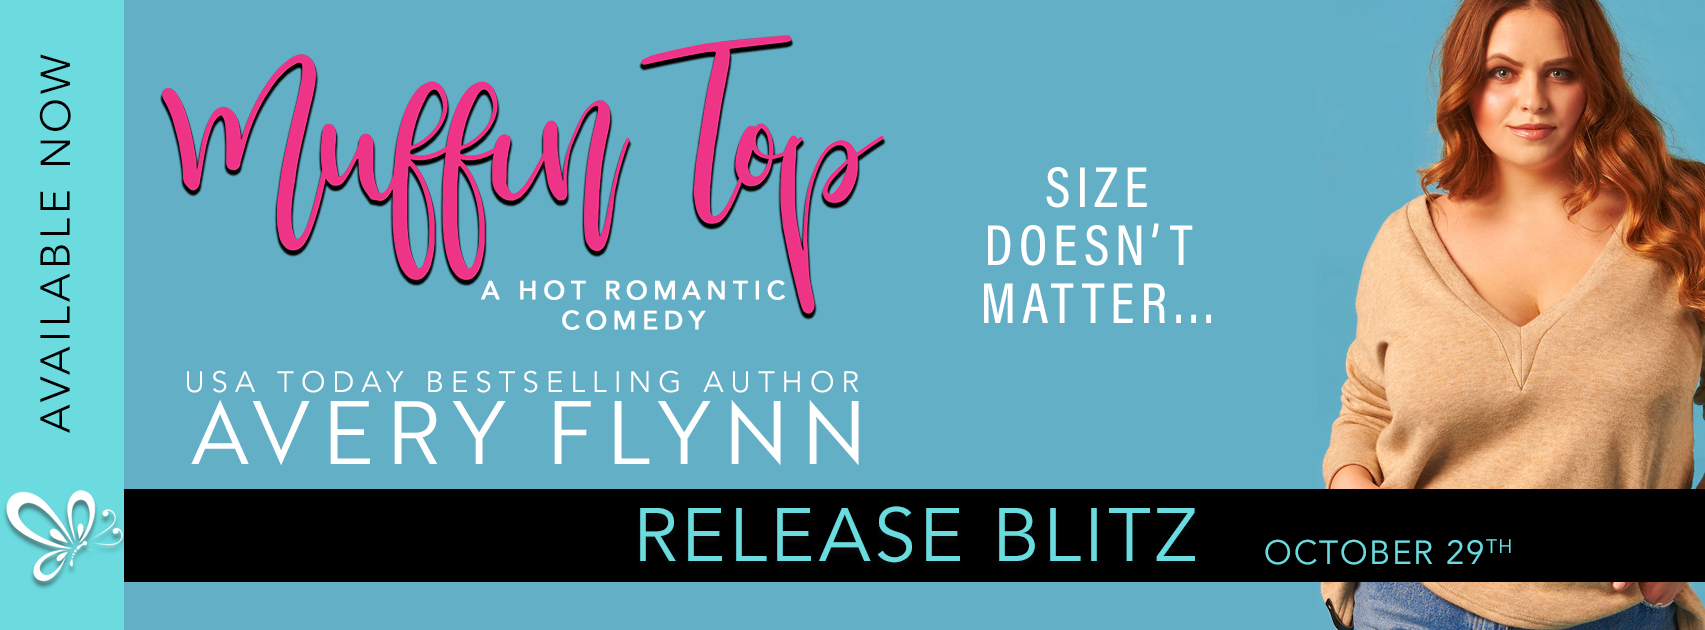 MUFFIN TOP by Avery Flynn @averyflynn @jennw23 #newrelease #mustread #review #unratedbookshelf